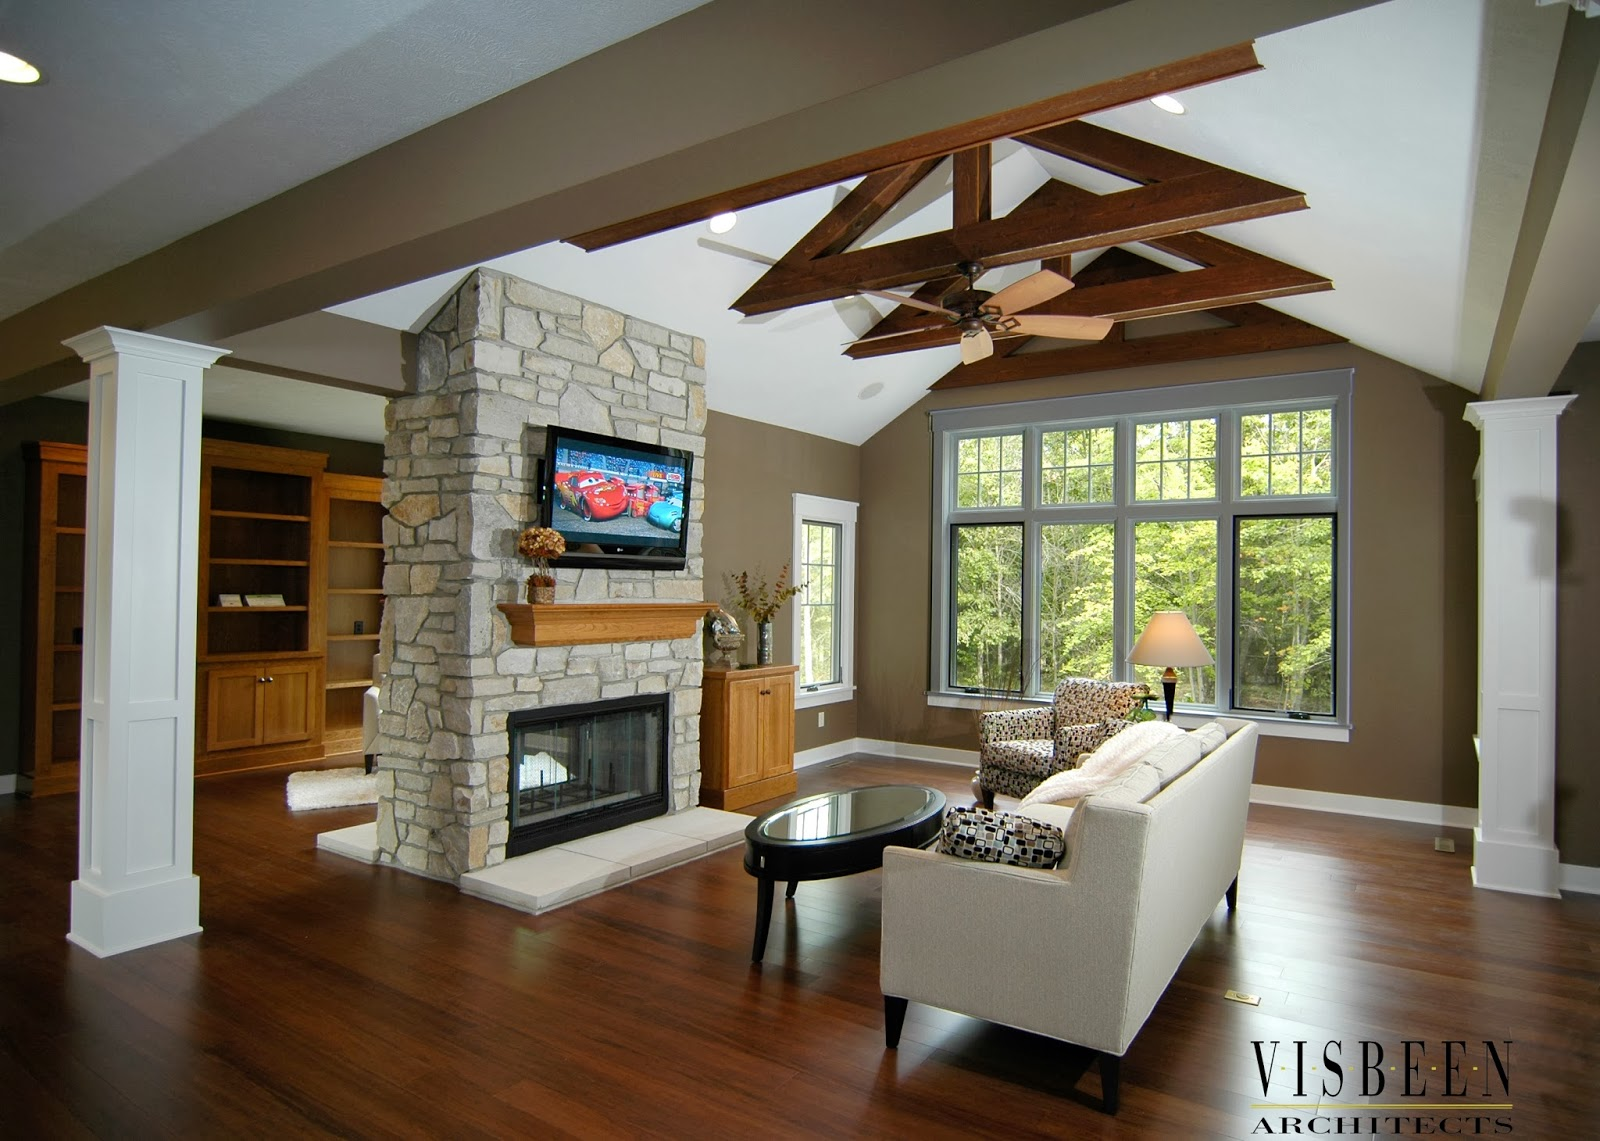 Living Room With Fireplace In Middle room guide: fireplace | visbeen architects